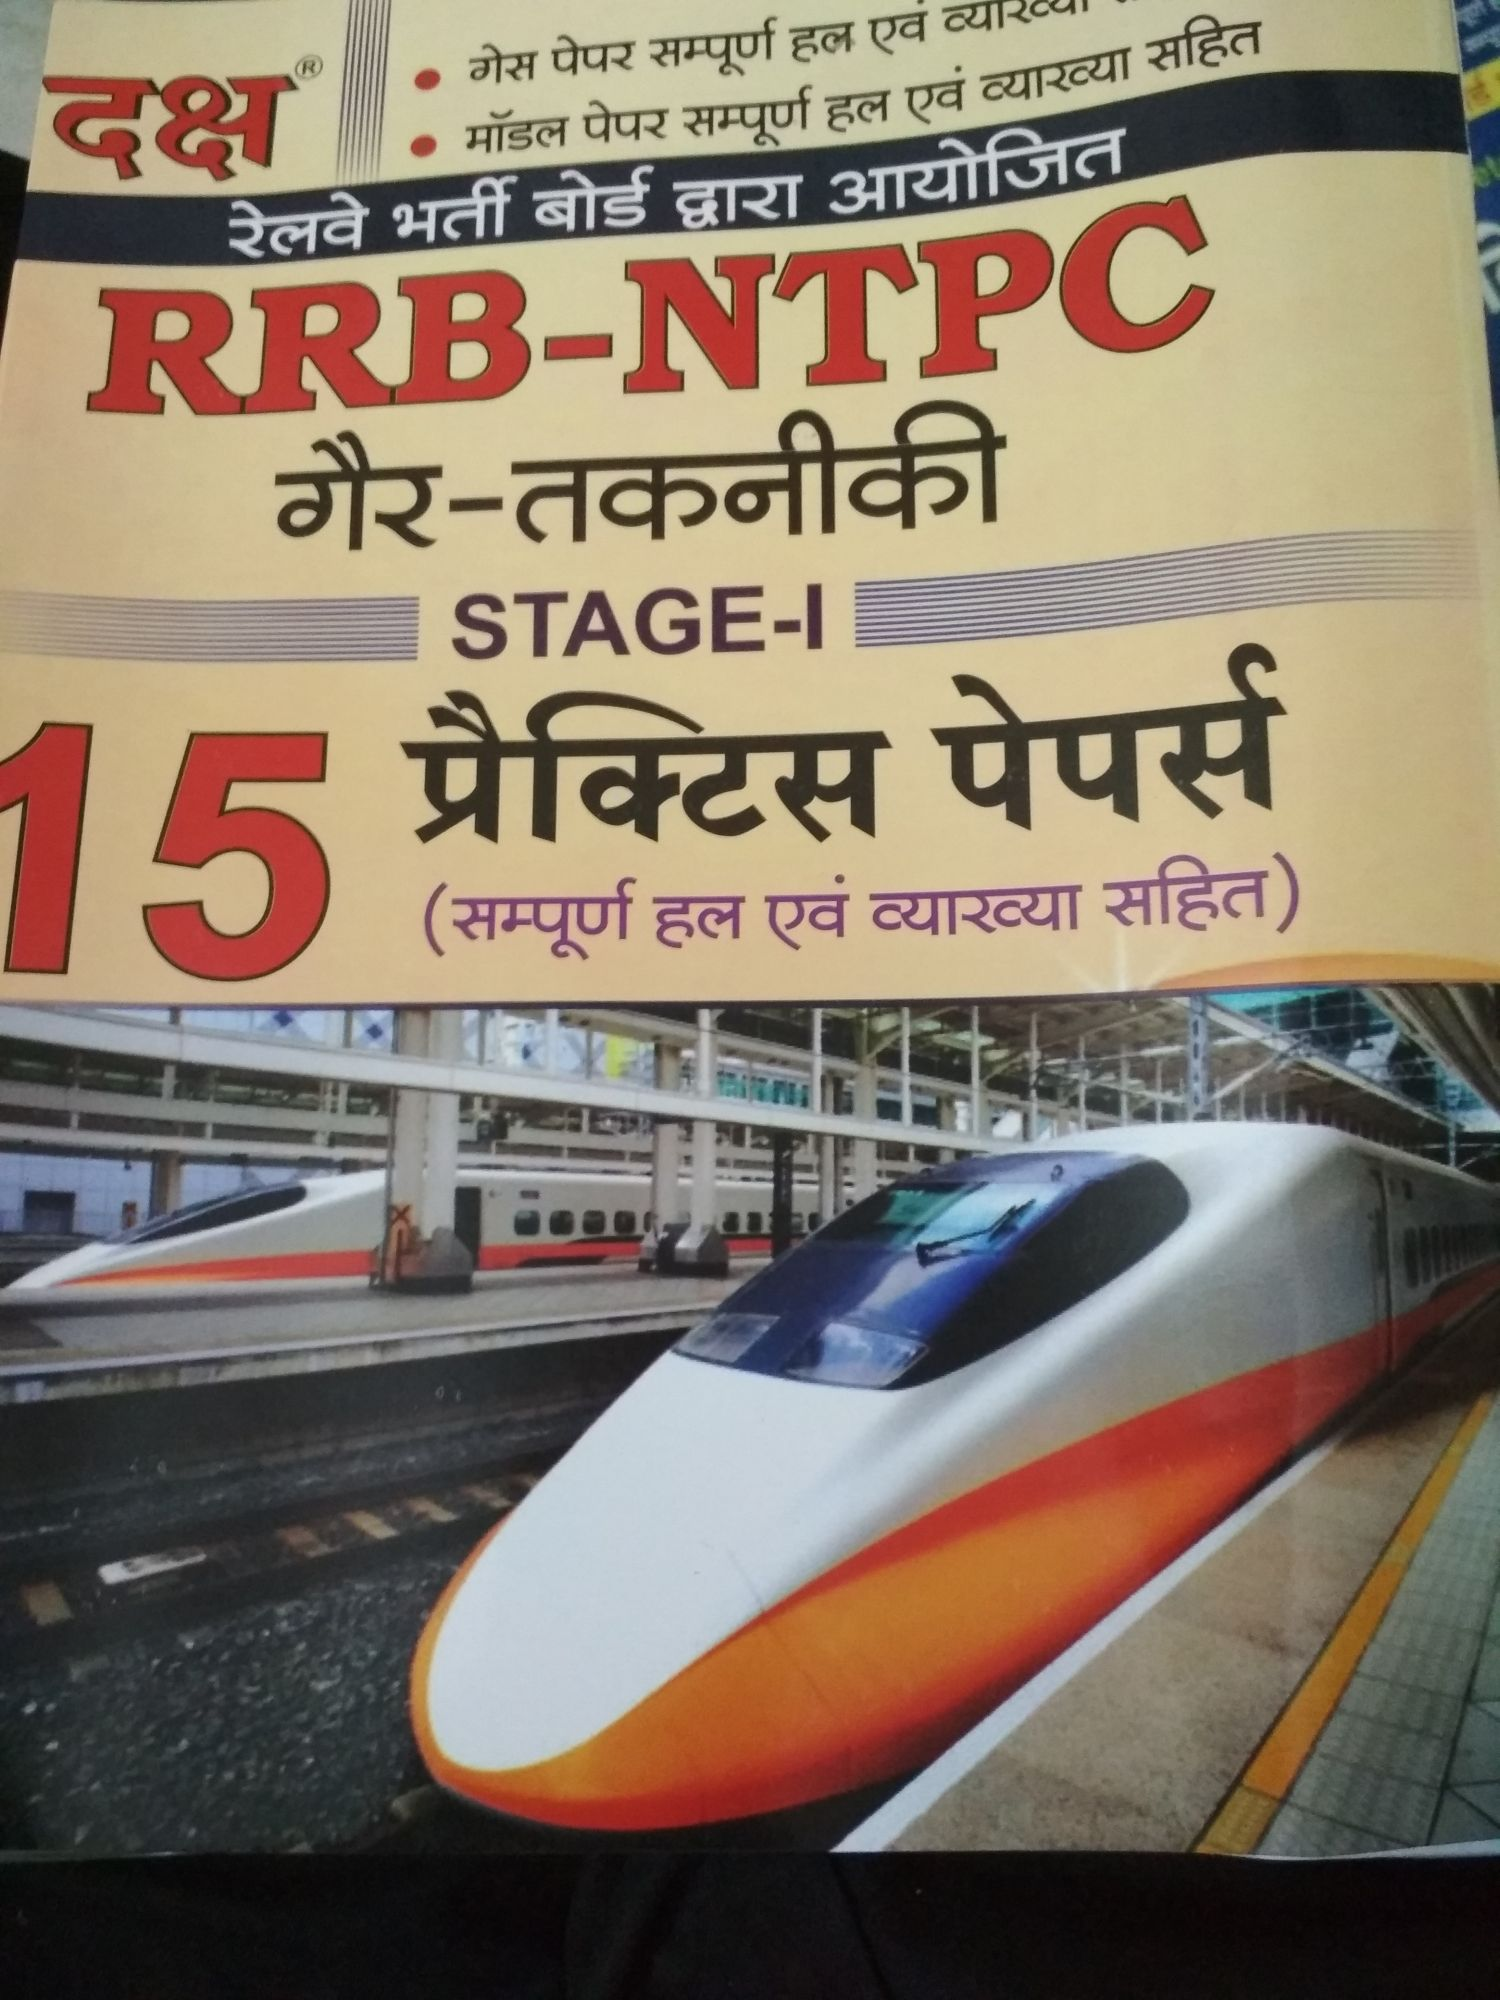 Rrb Ntpc Railway 15 Practice Test Papers By Daksh  in hindi medium